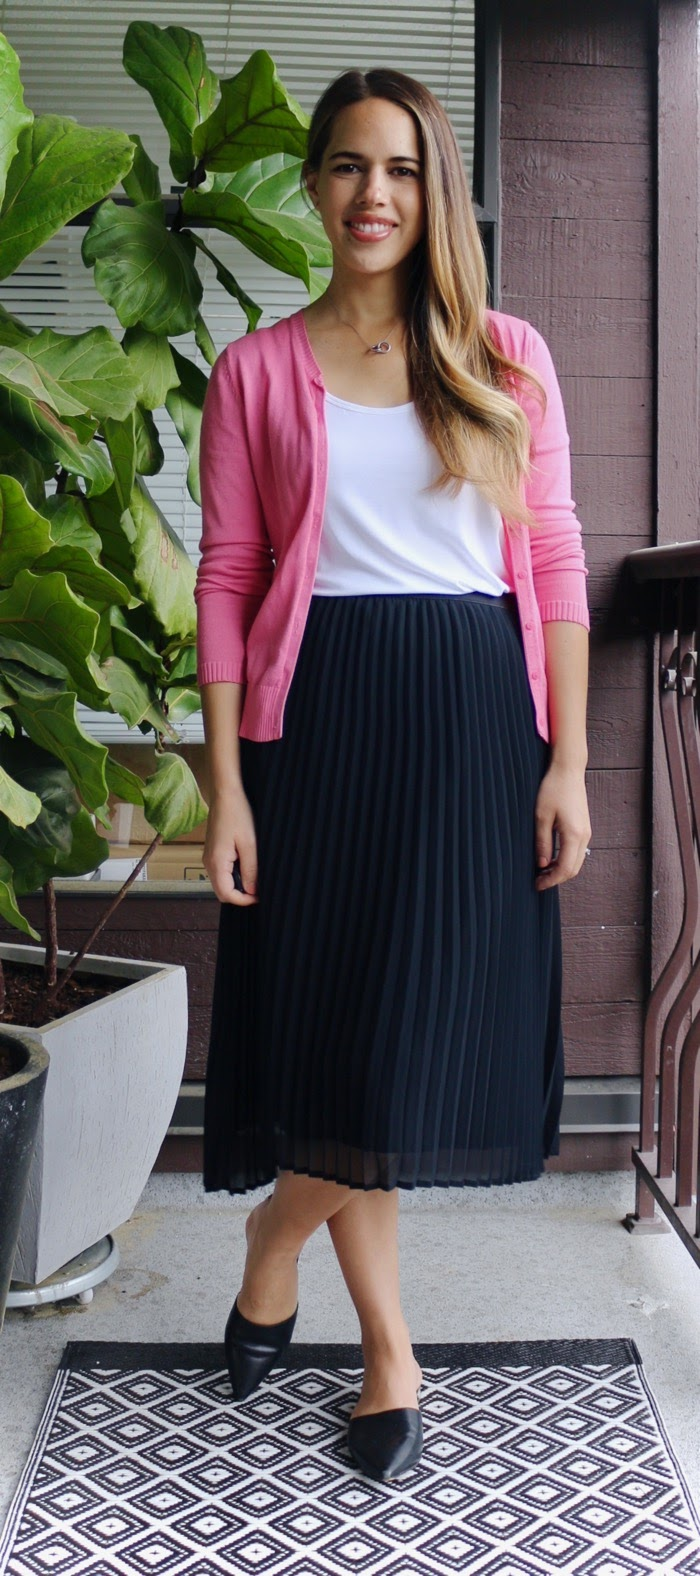 Jules in Flats - Pleated Midi Skirt with Cardigan